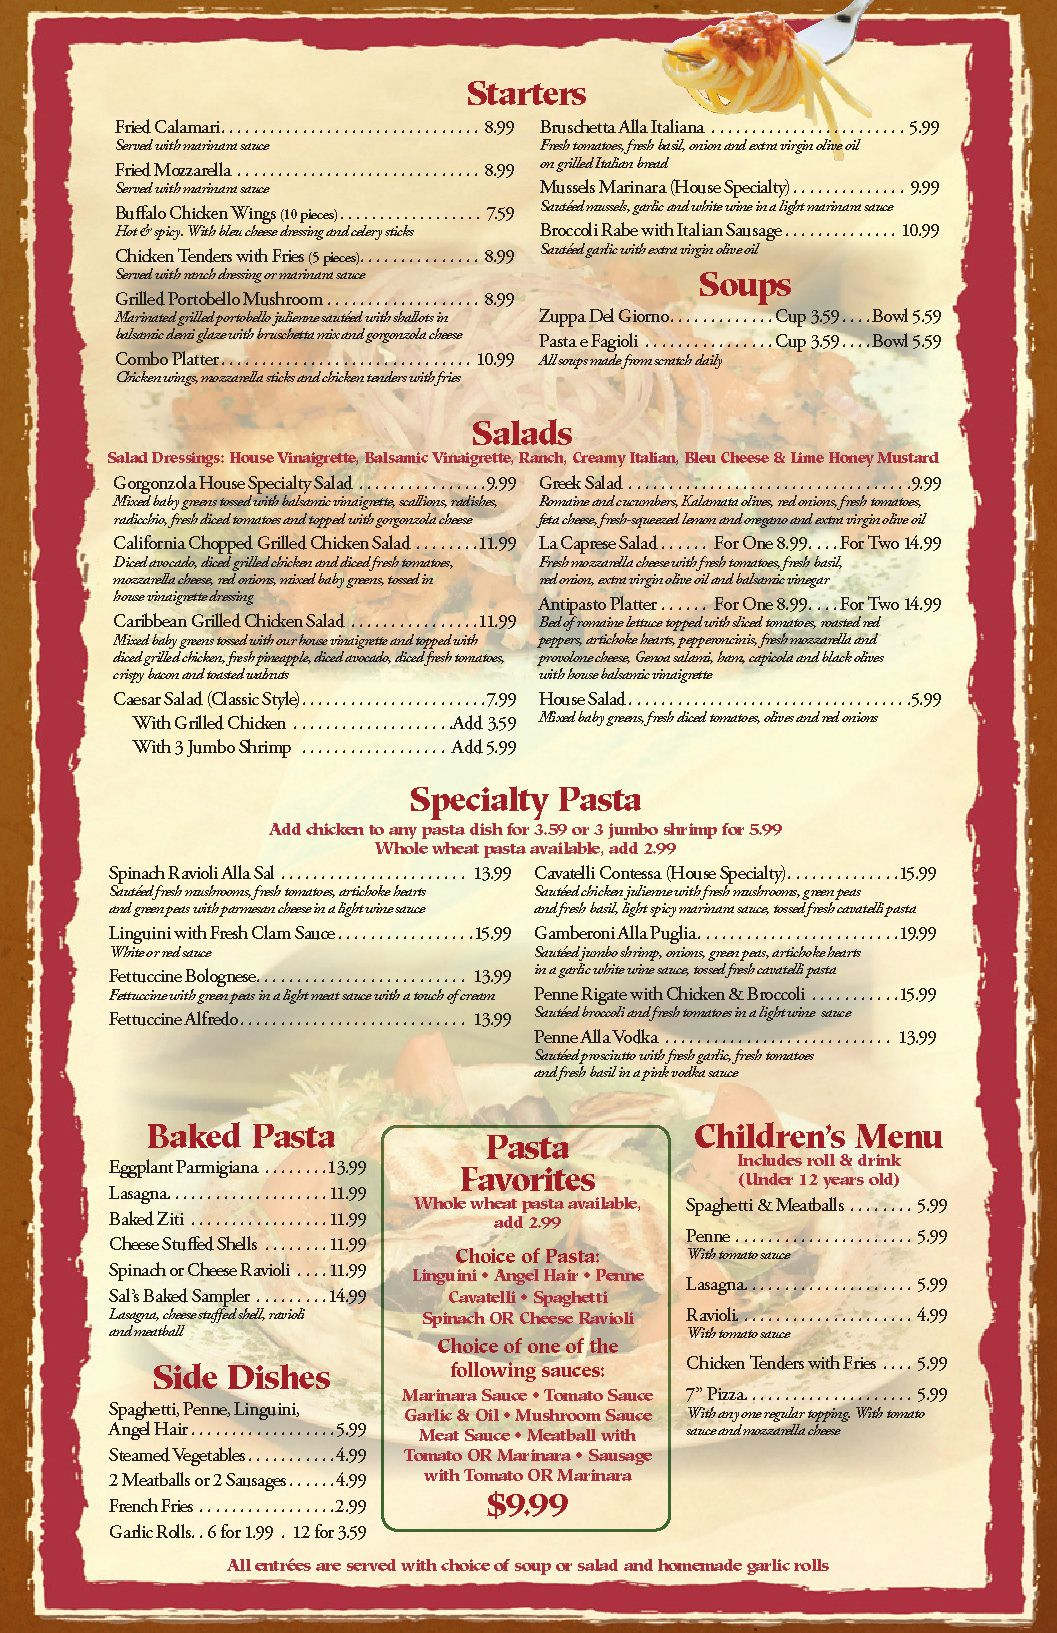 Menu Templates Microsoft Word Menu Office TemplatesMs Word Menu – Word Restaurant Menu Template